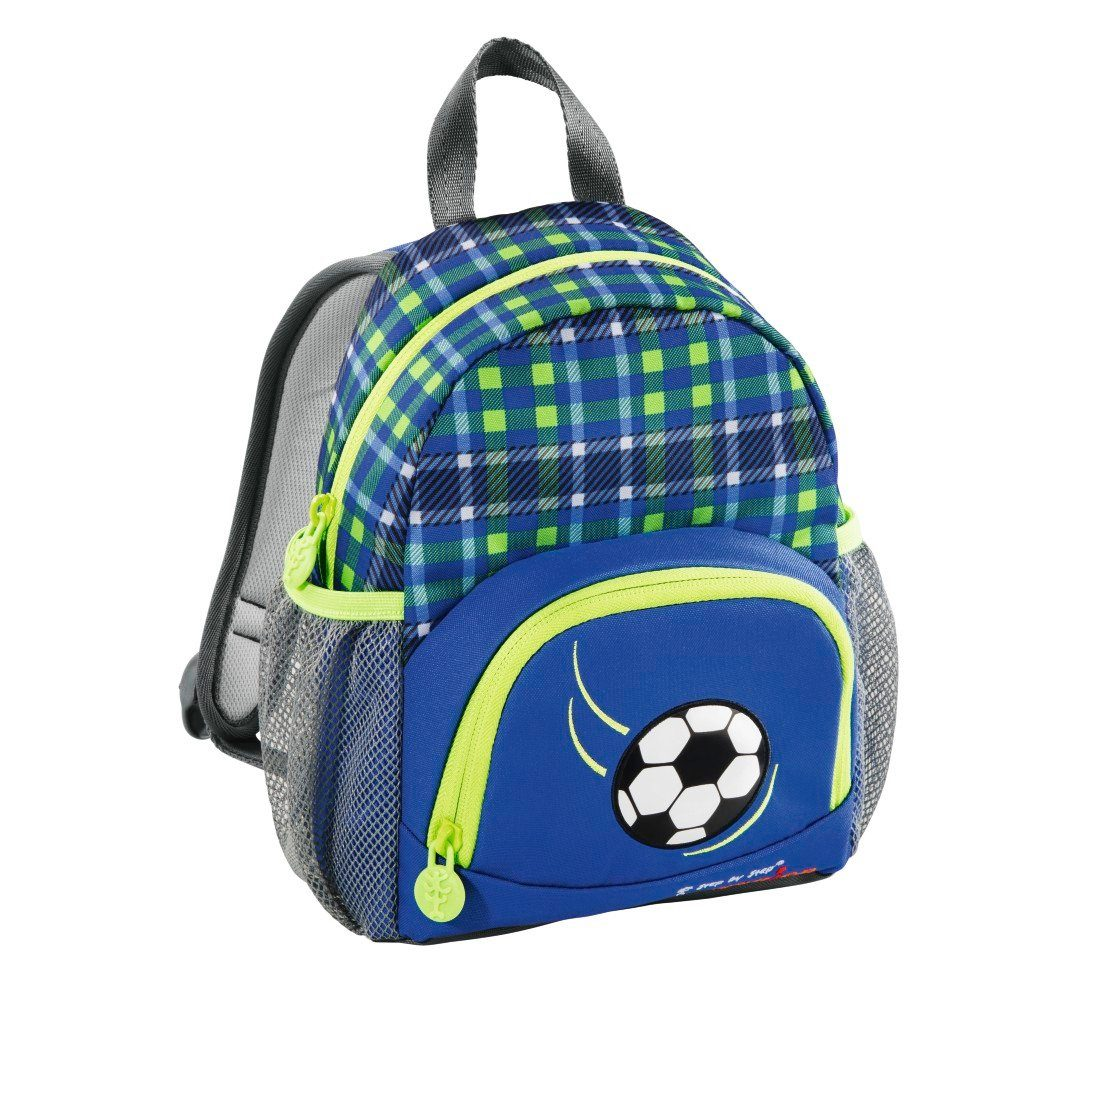 Step by Step JUNIOR Kindergartenrucksack Little Dressy, Football